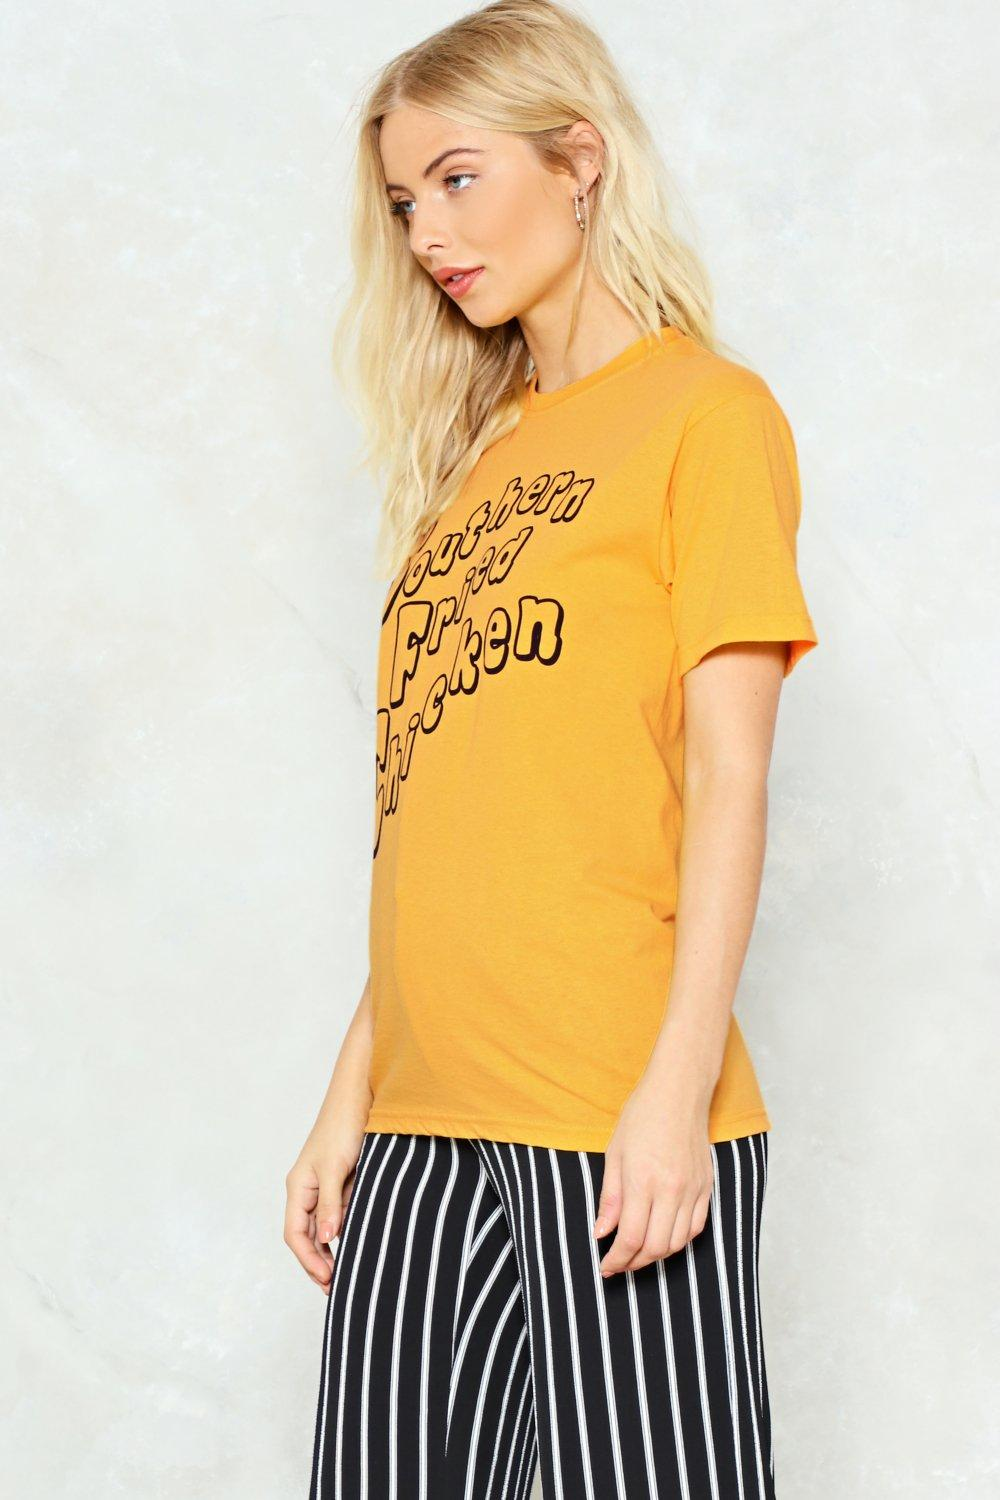 b87666c2912bc5 Southern Fried Chicken Tee | Shop Clothes at Nasty Gal!